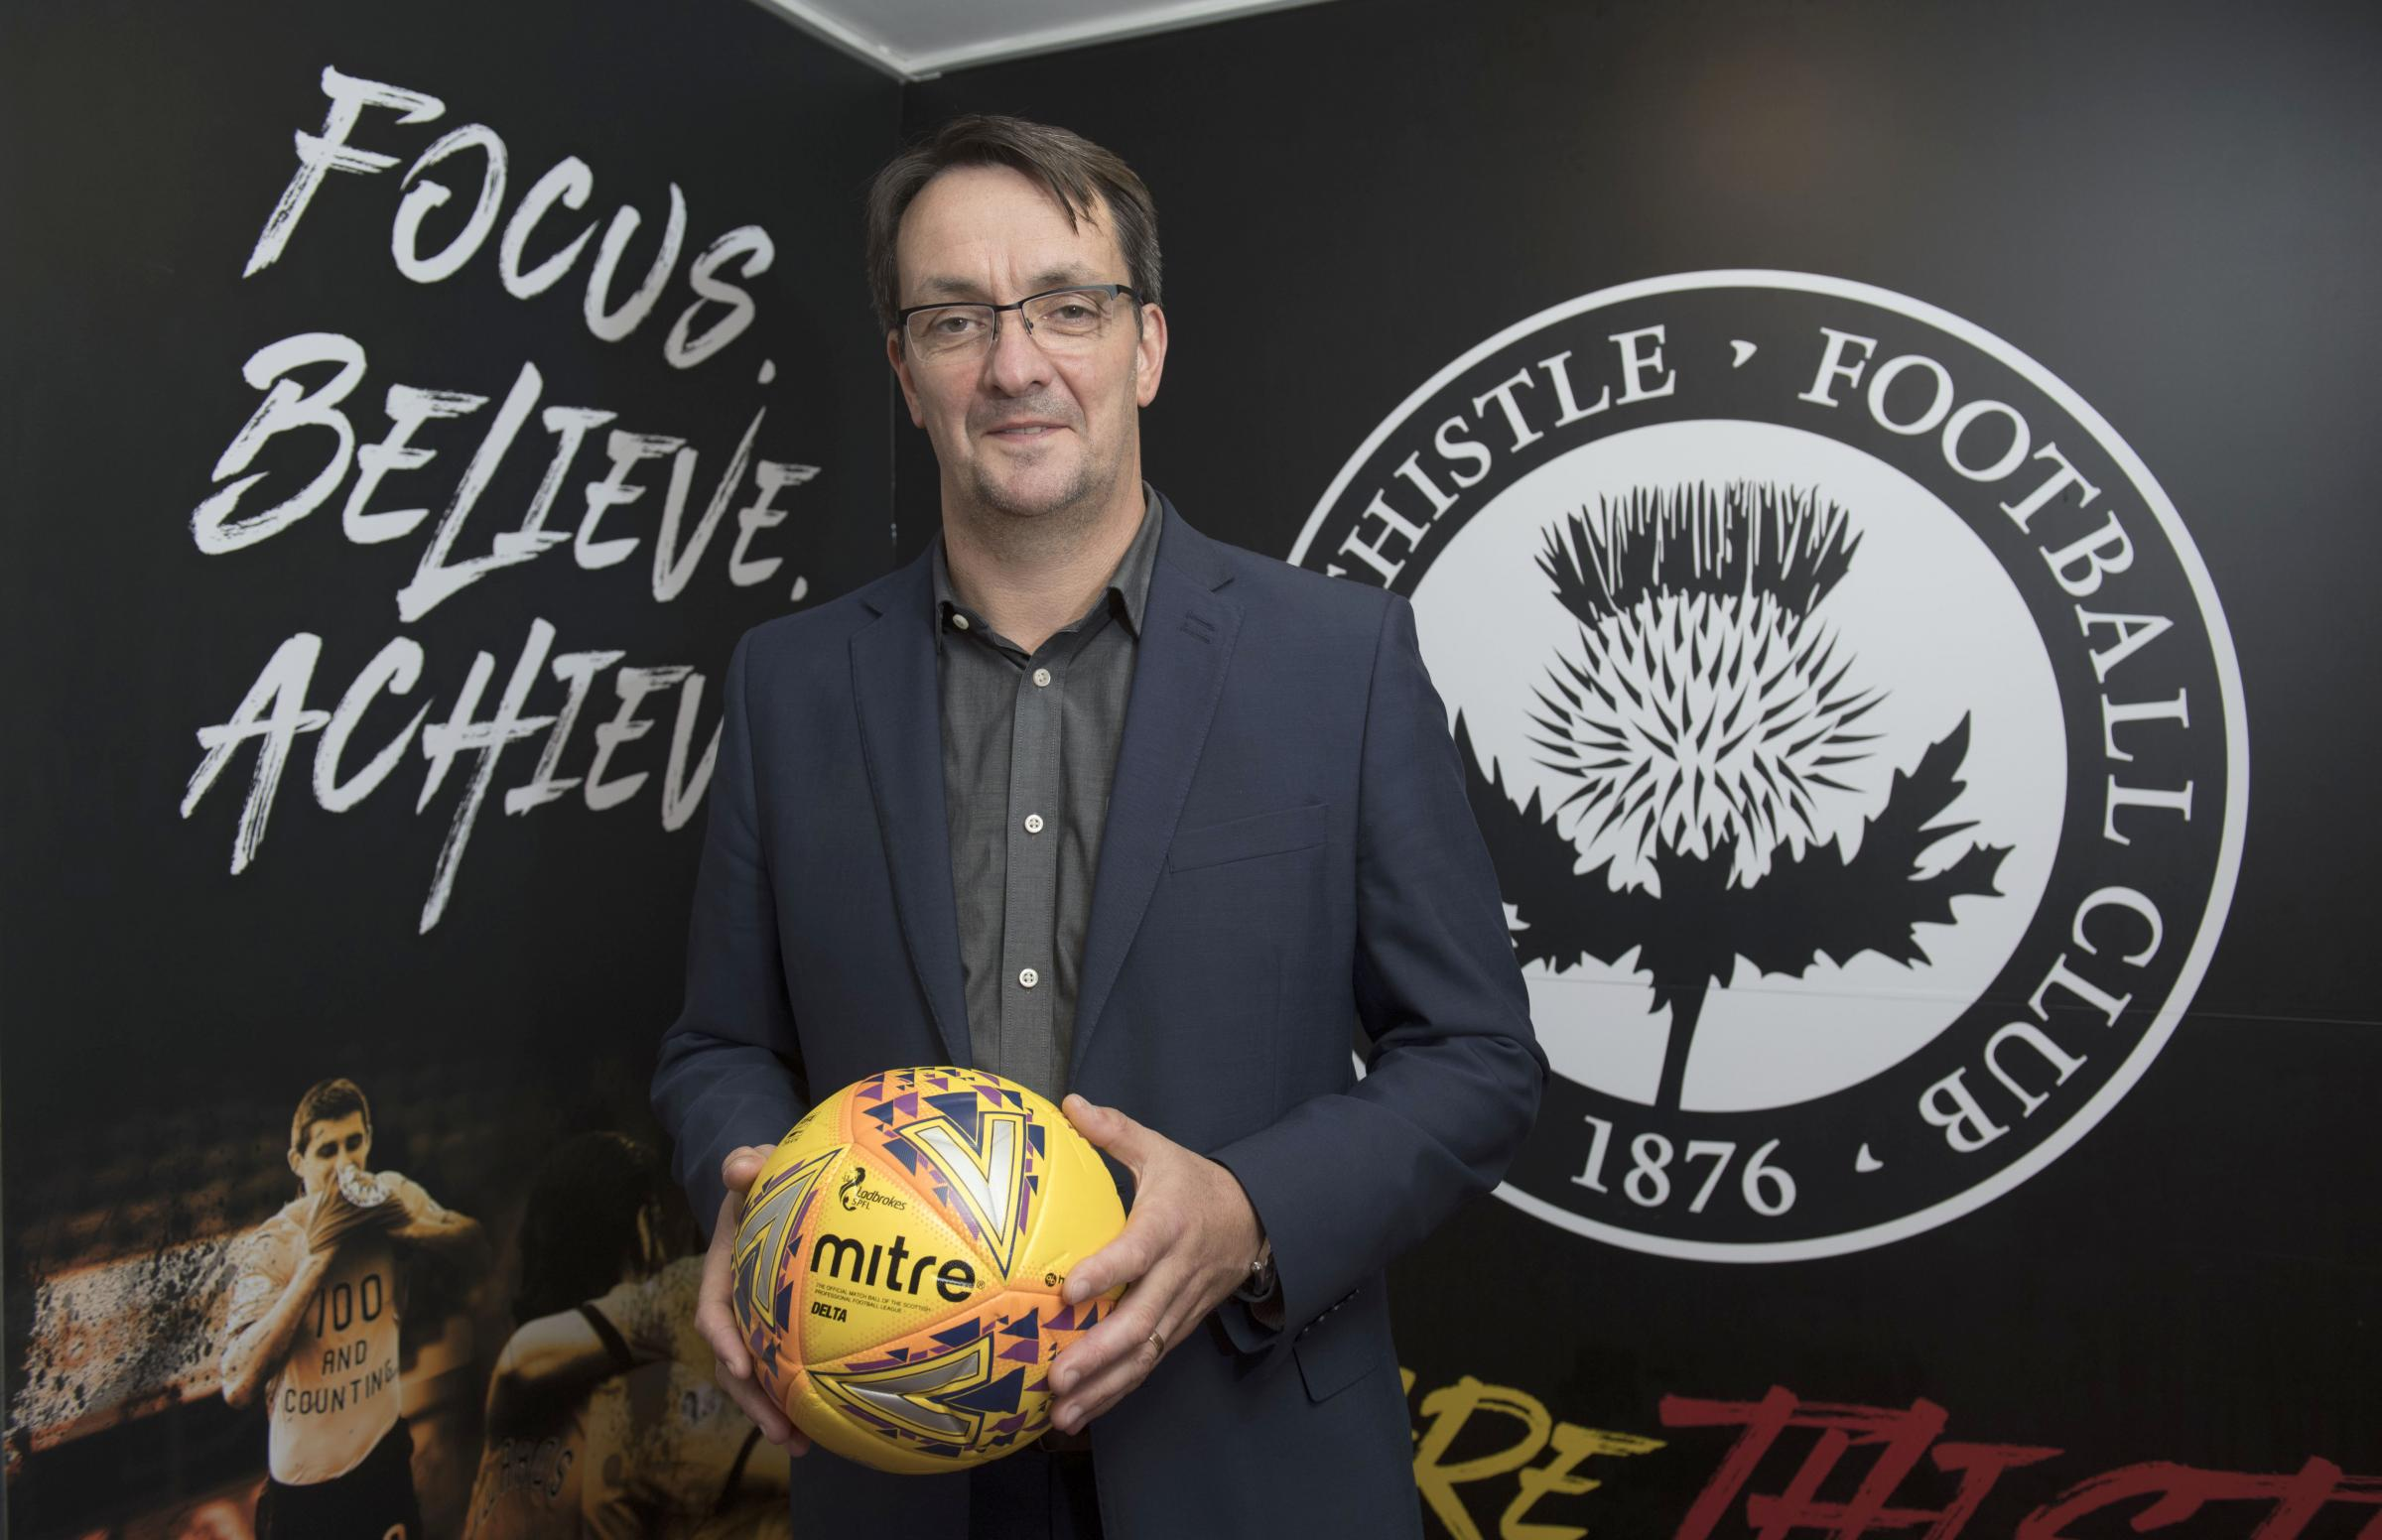 Clubs are afraid to speak out against SPFL, says Partick Thistle chief